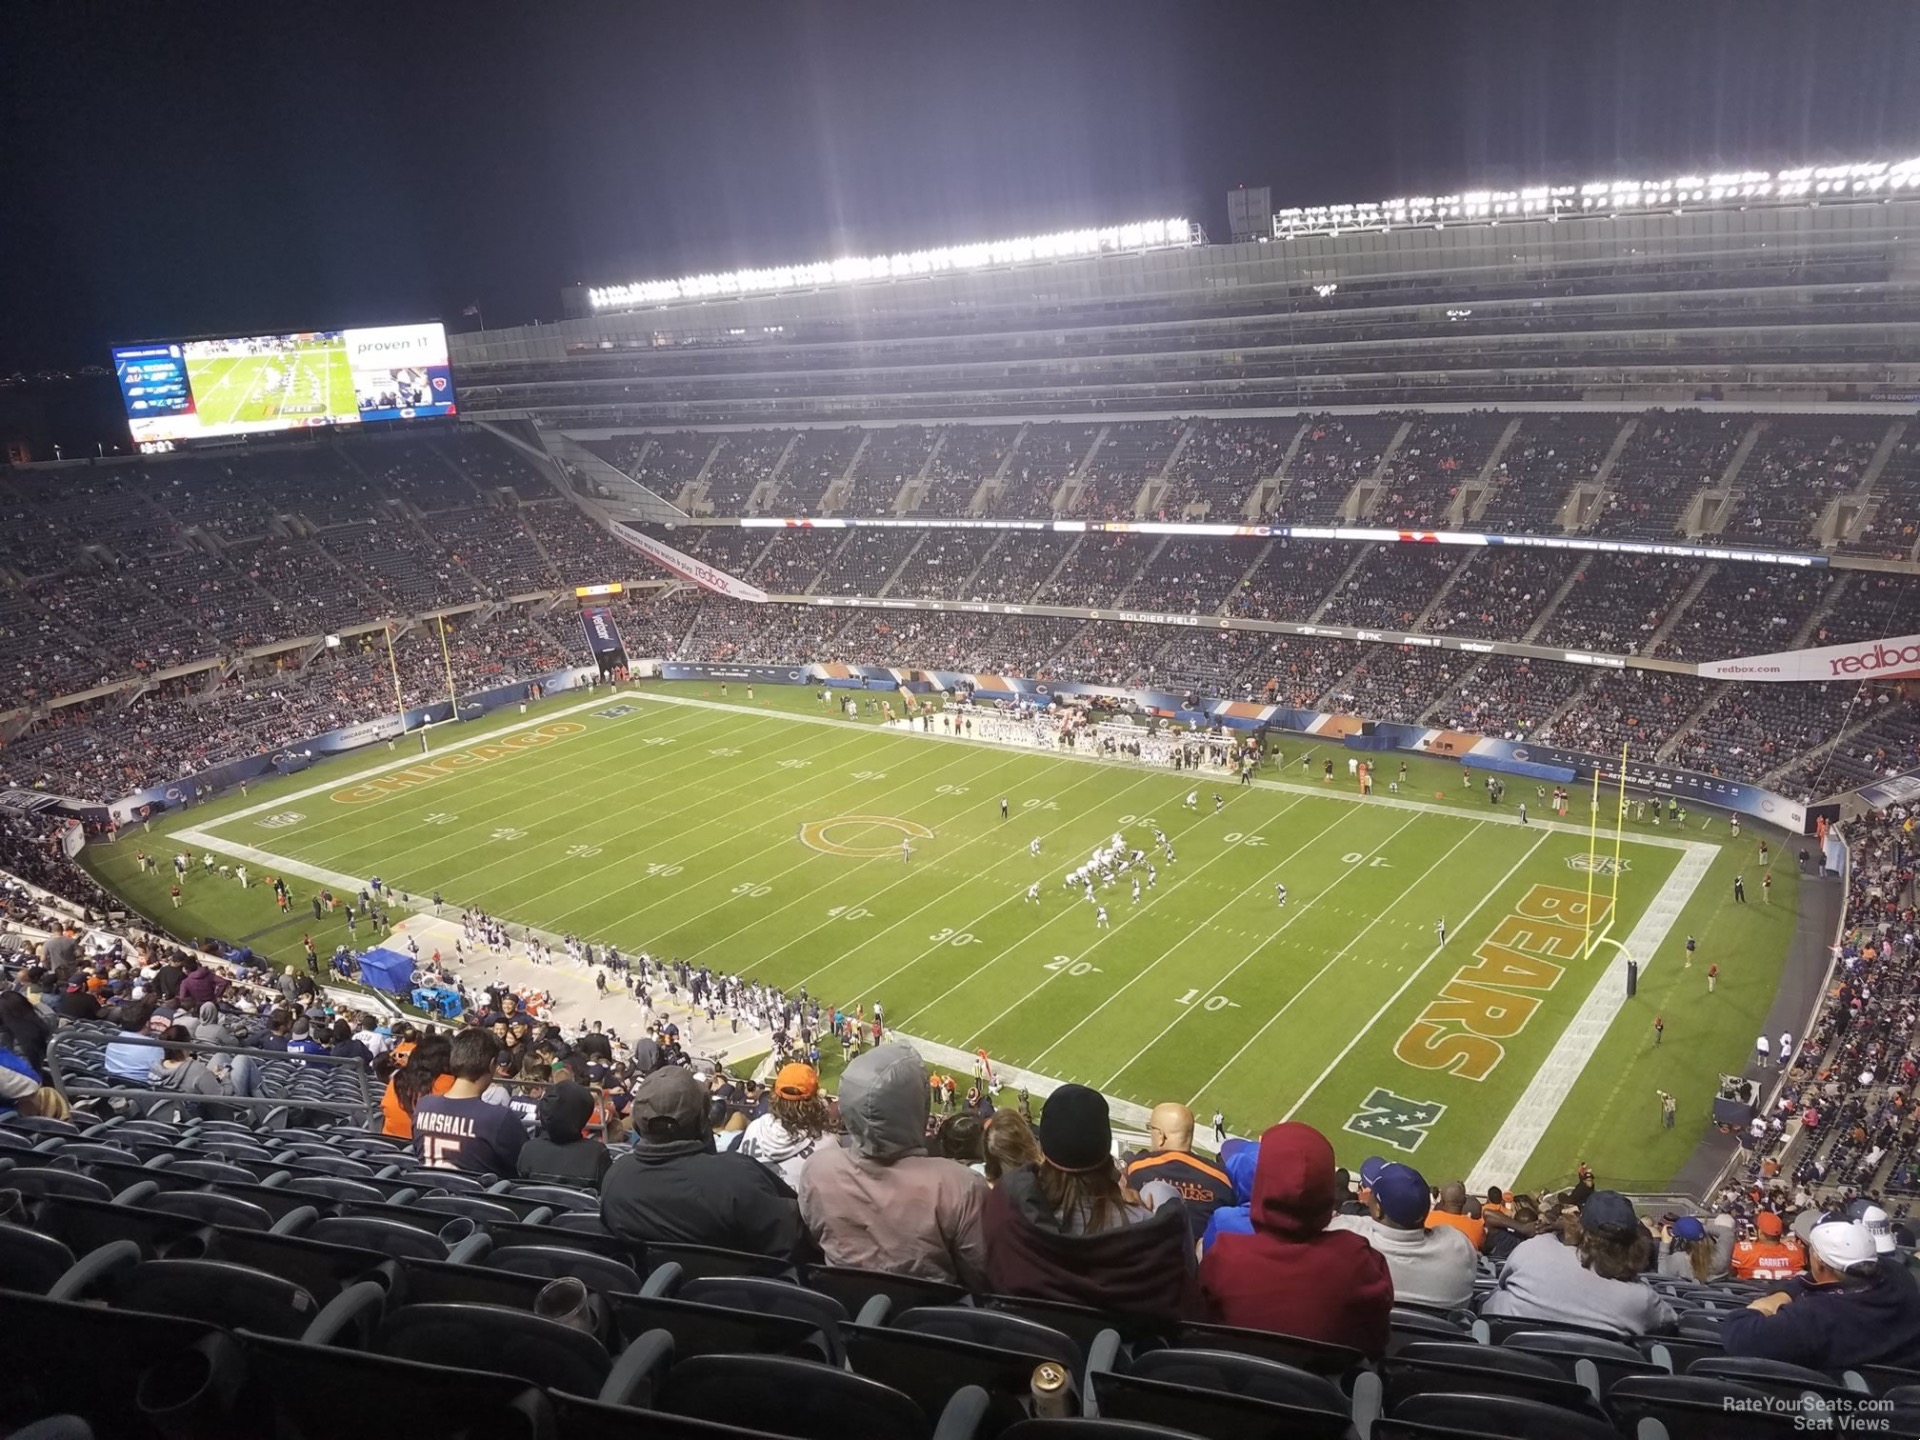 Soldier Field Section 431 Row 12 Seat 14-16